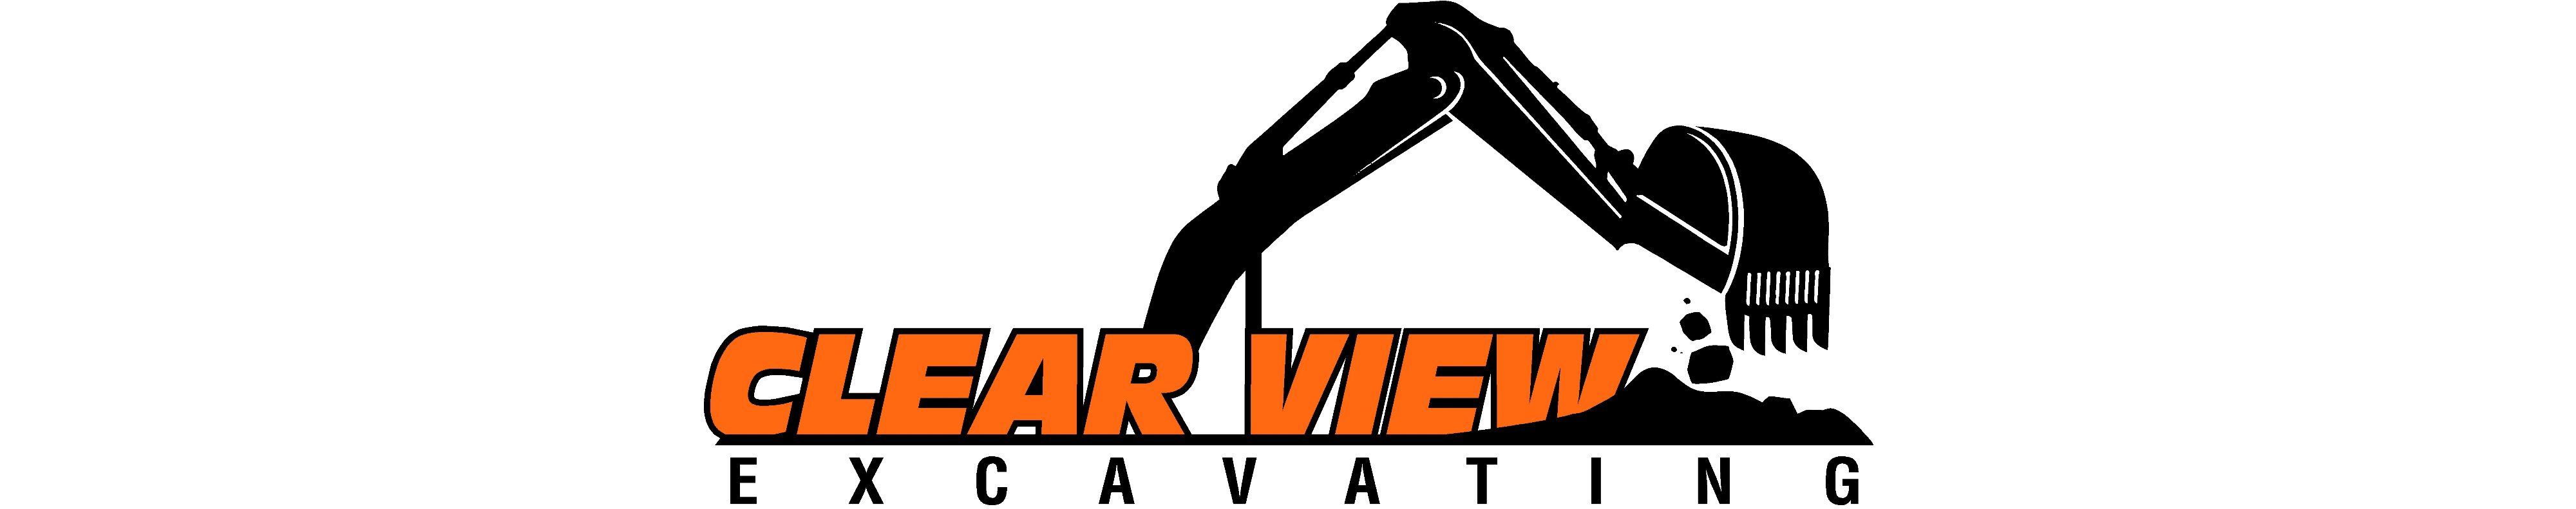 ClearView Dark Logo